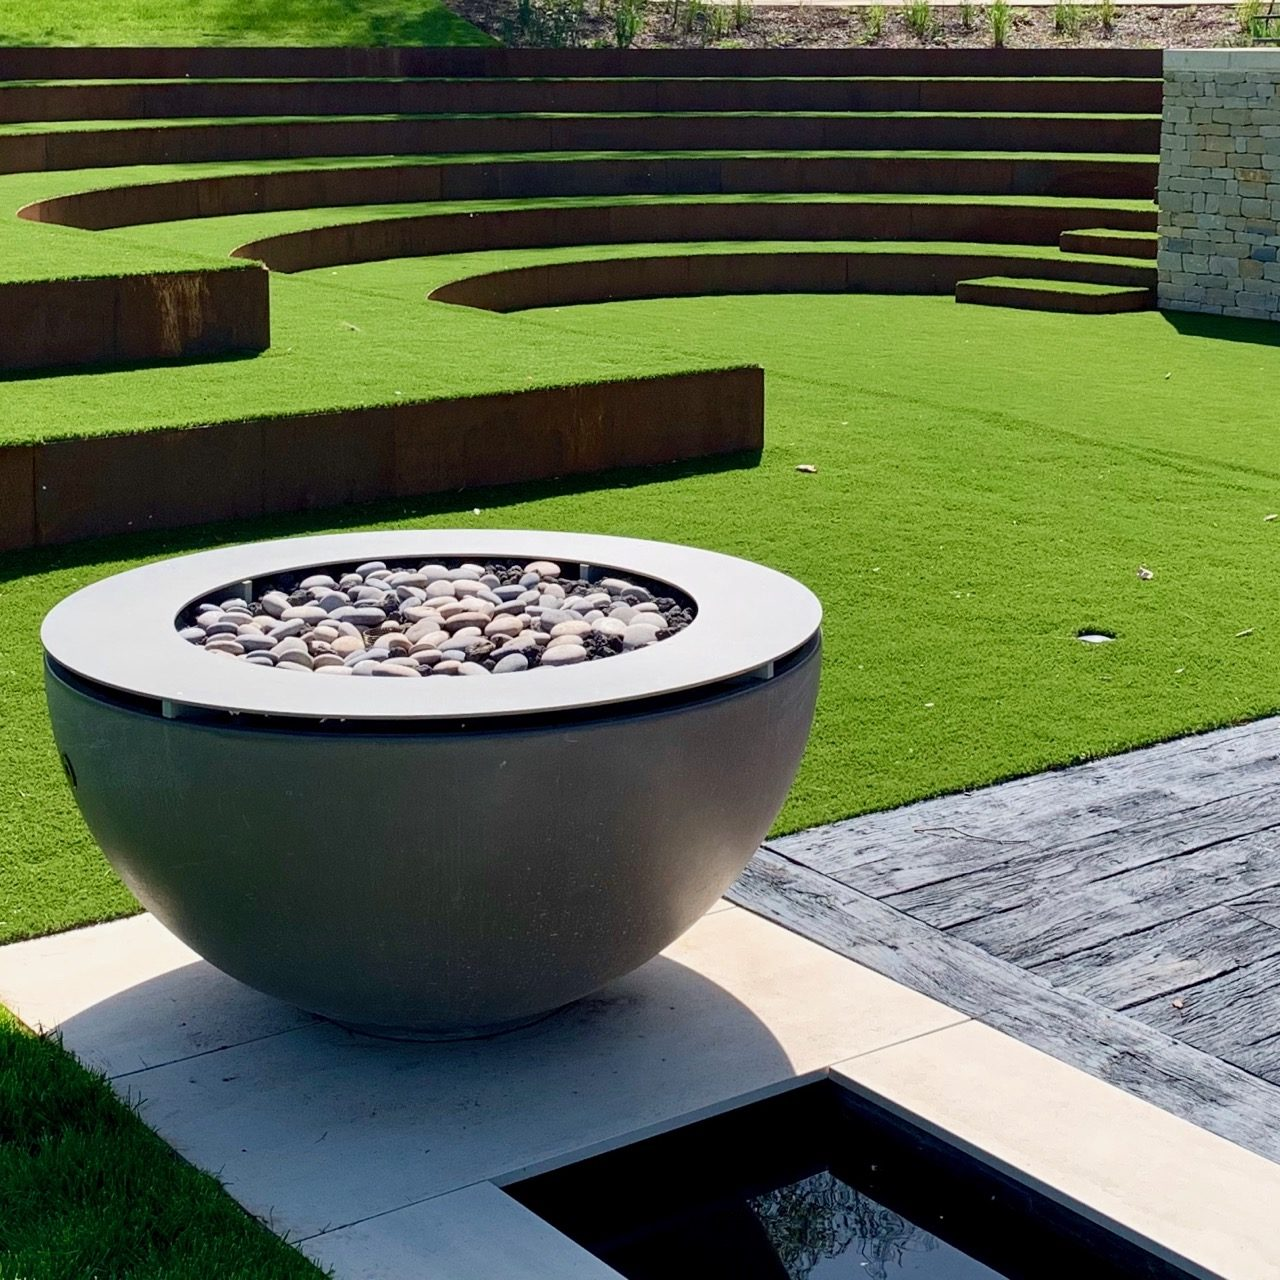 great fire burner in this contemporary Cotswold garden I designed for my clients that melds rural with modern architectural styling. Garden designed by Jo Alderson Phillips